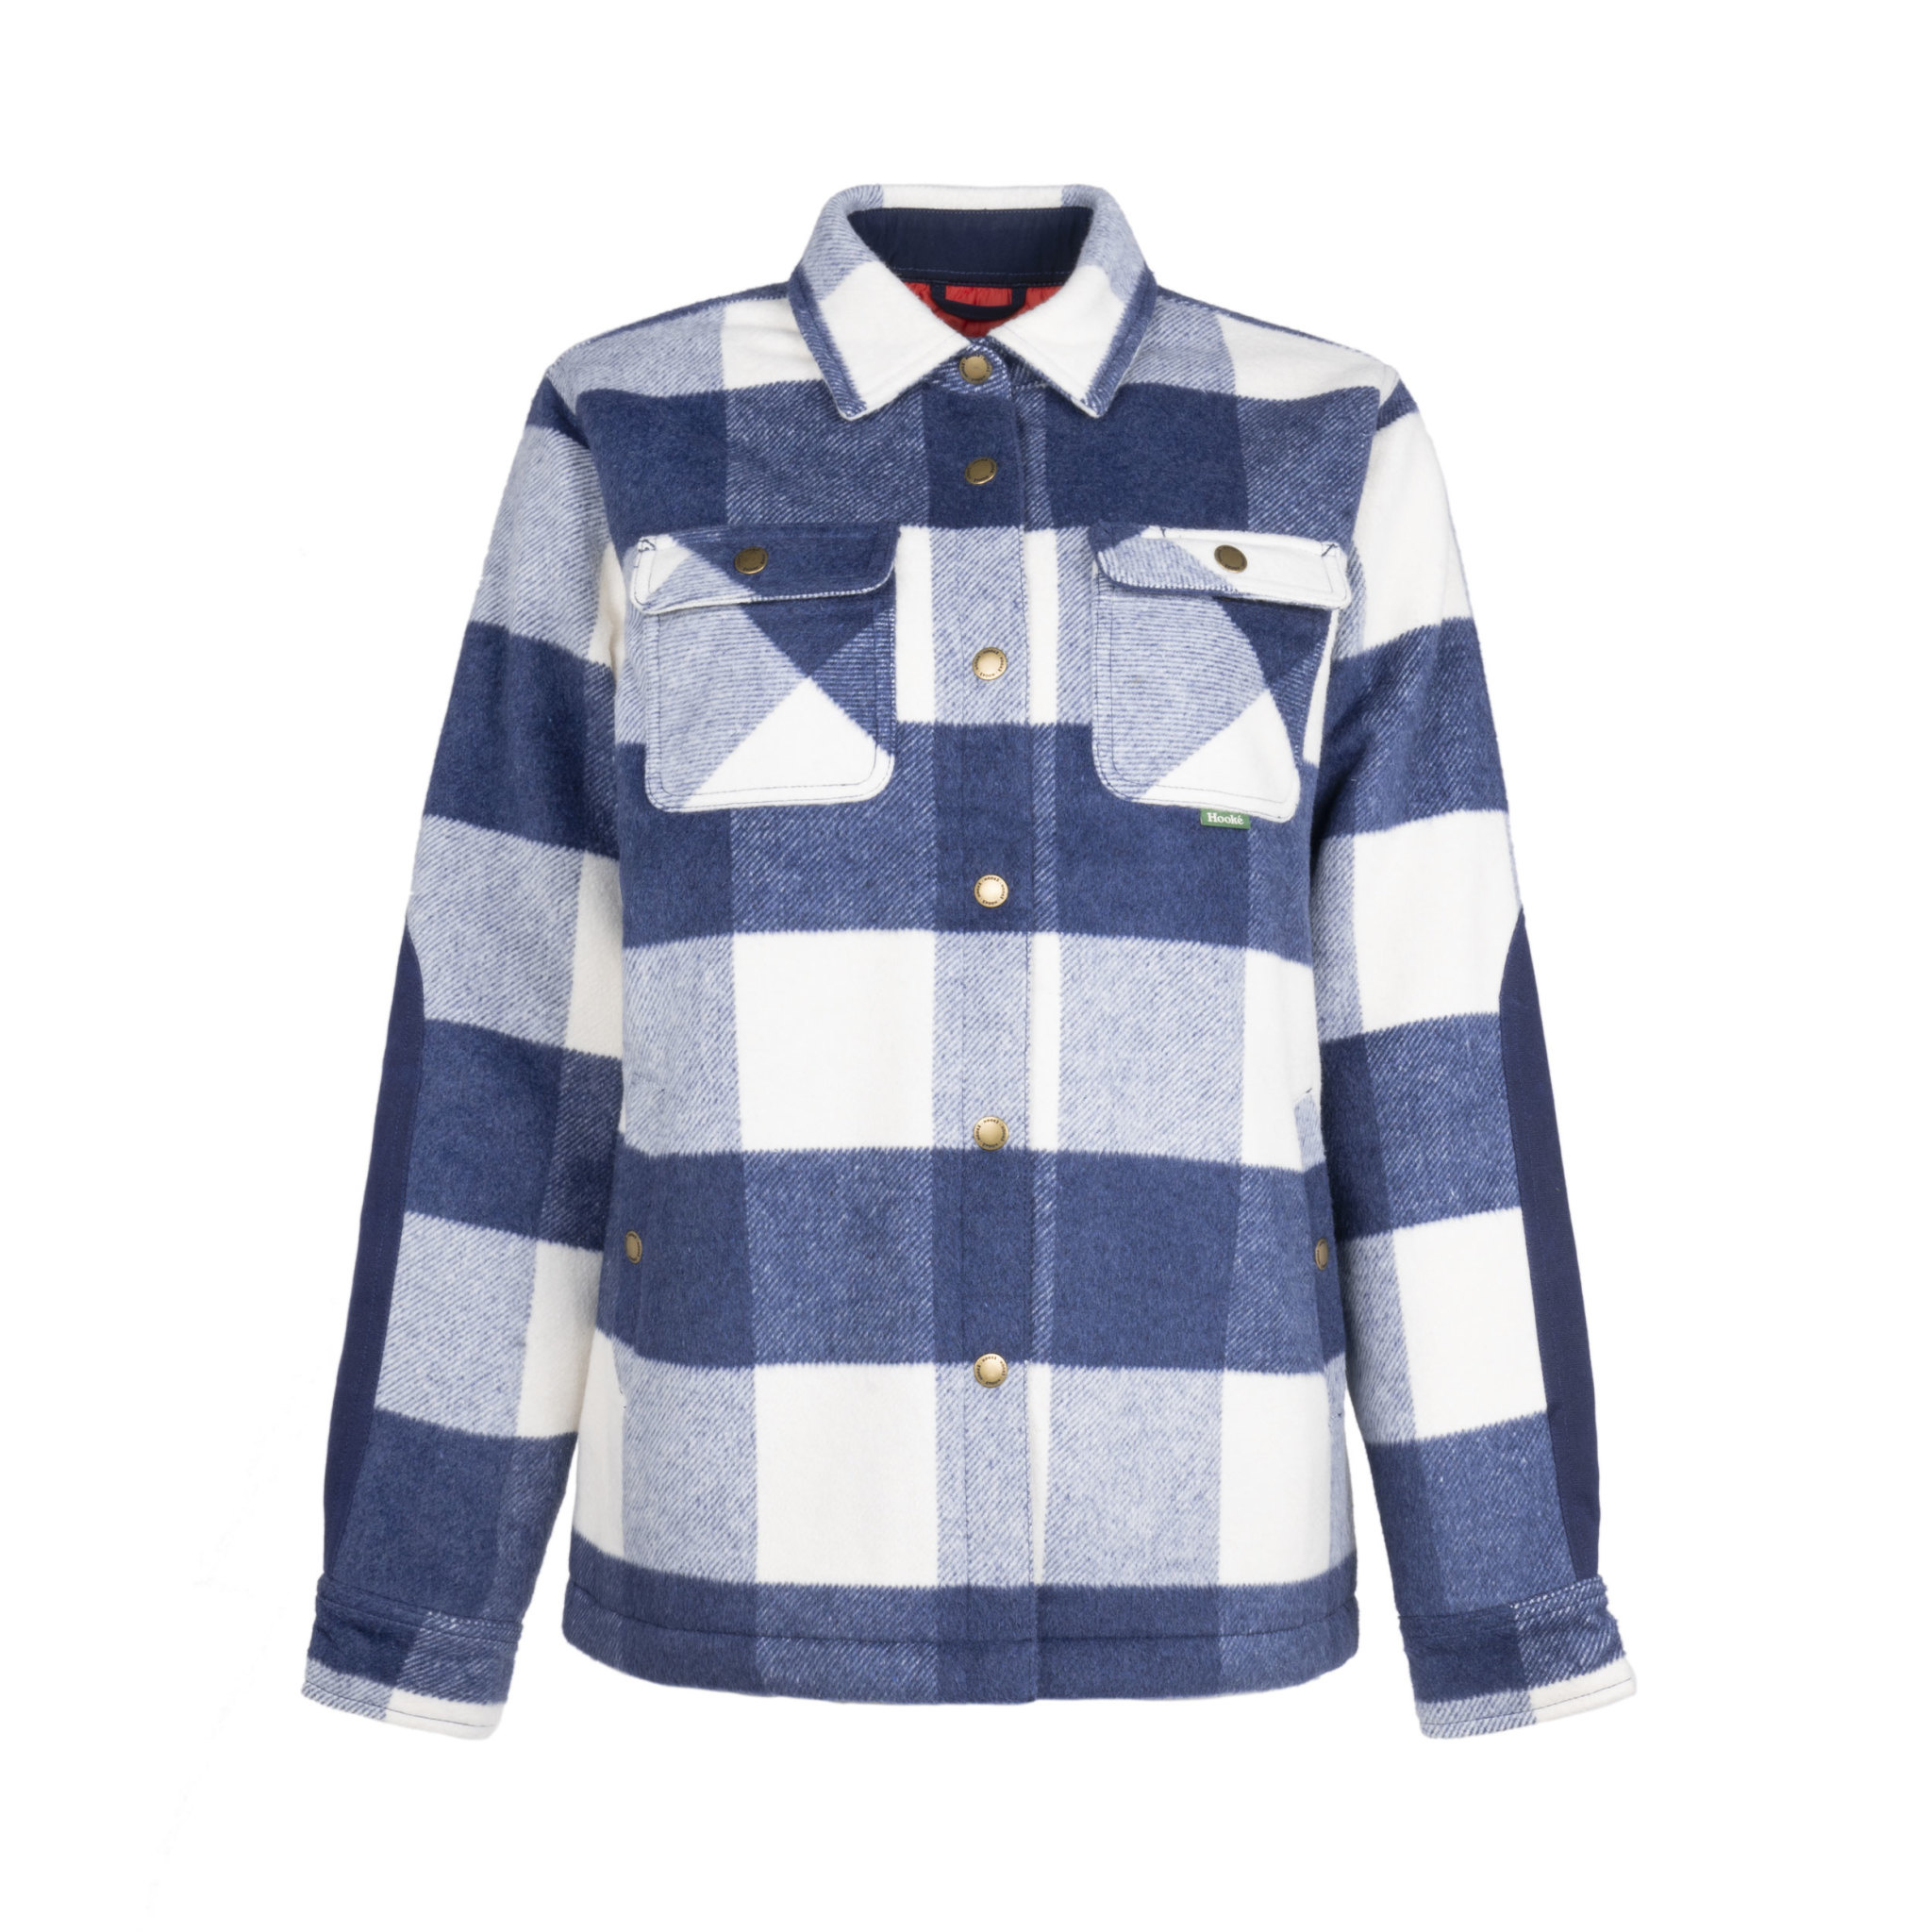 Women's Quebec Insulated Shirt Navy & White Plaid